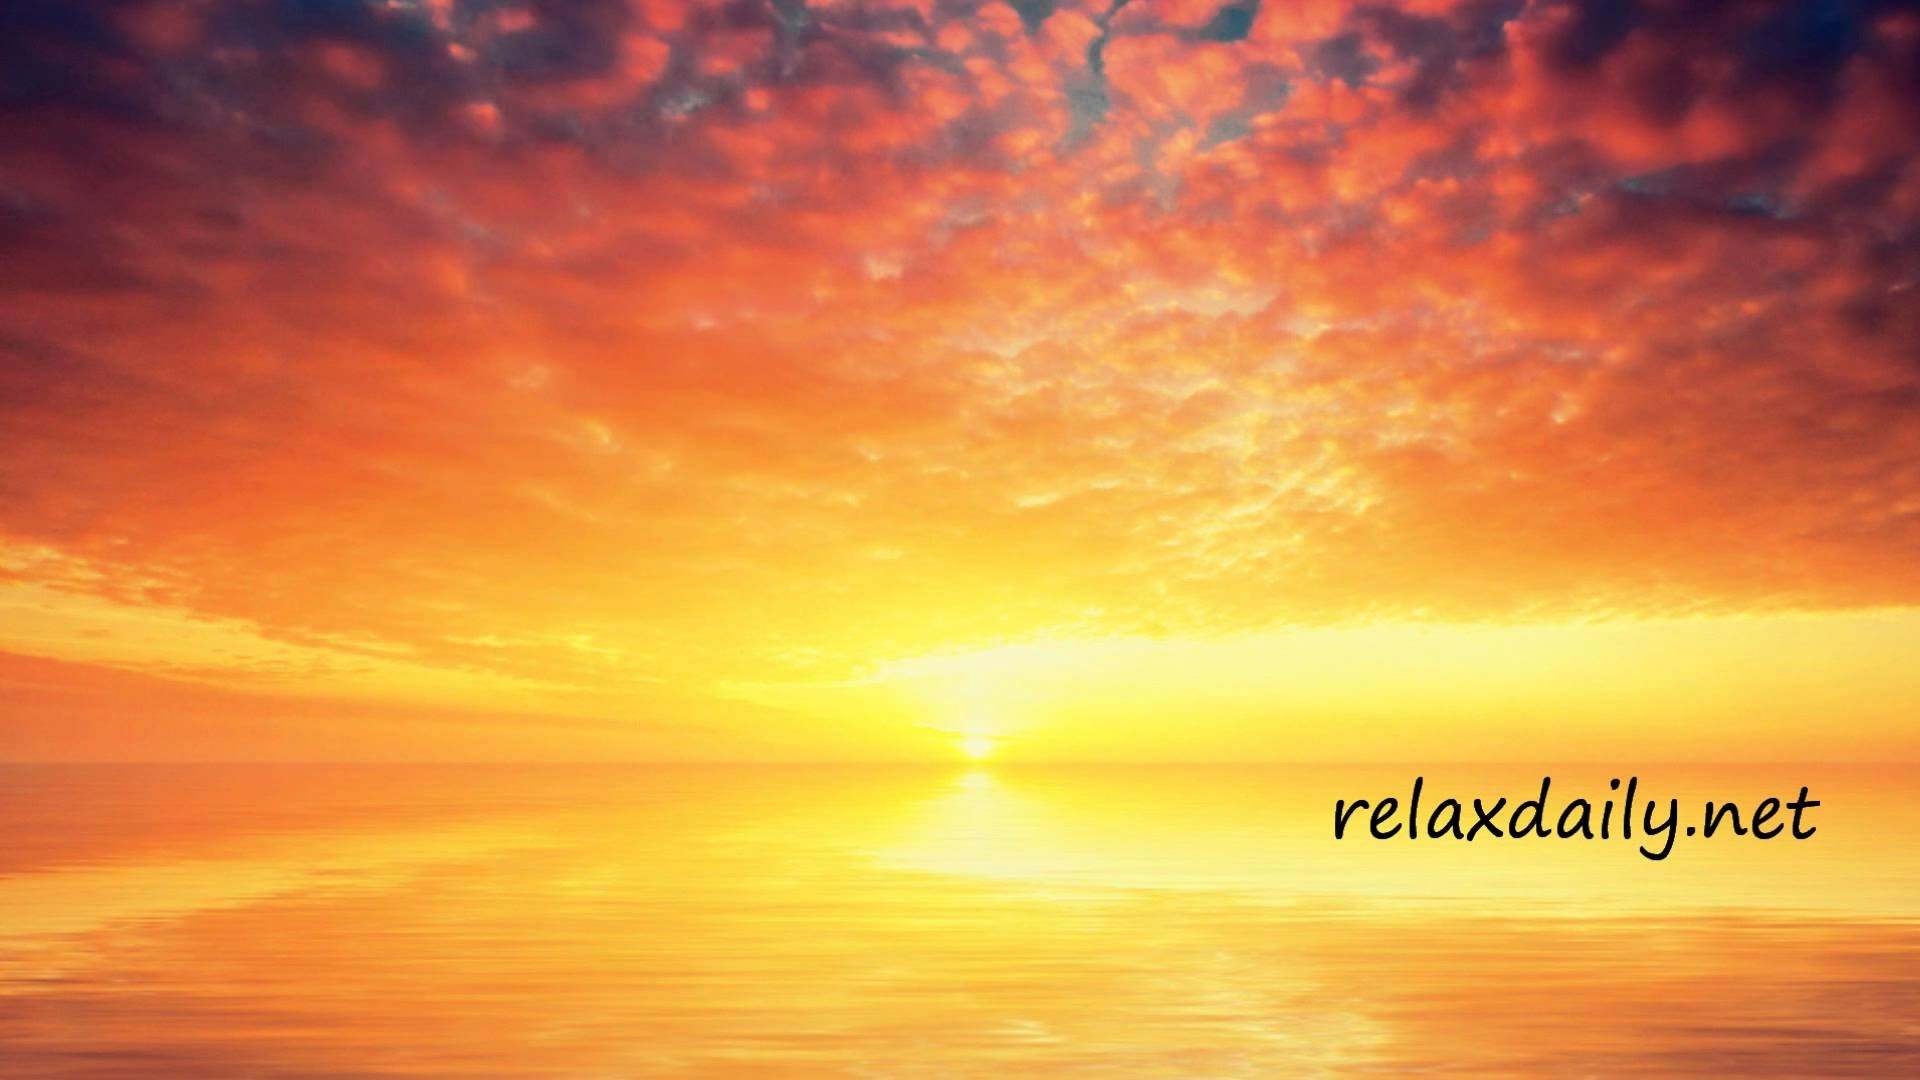 1920x1080 Slow Music for Background - Meditation, Yoga, Office - relaxdaily N°037 -  YouTube